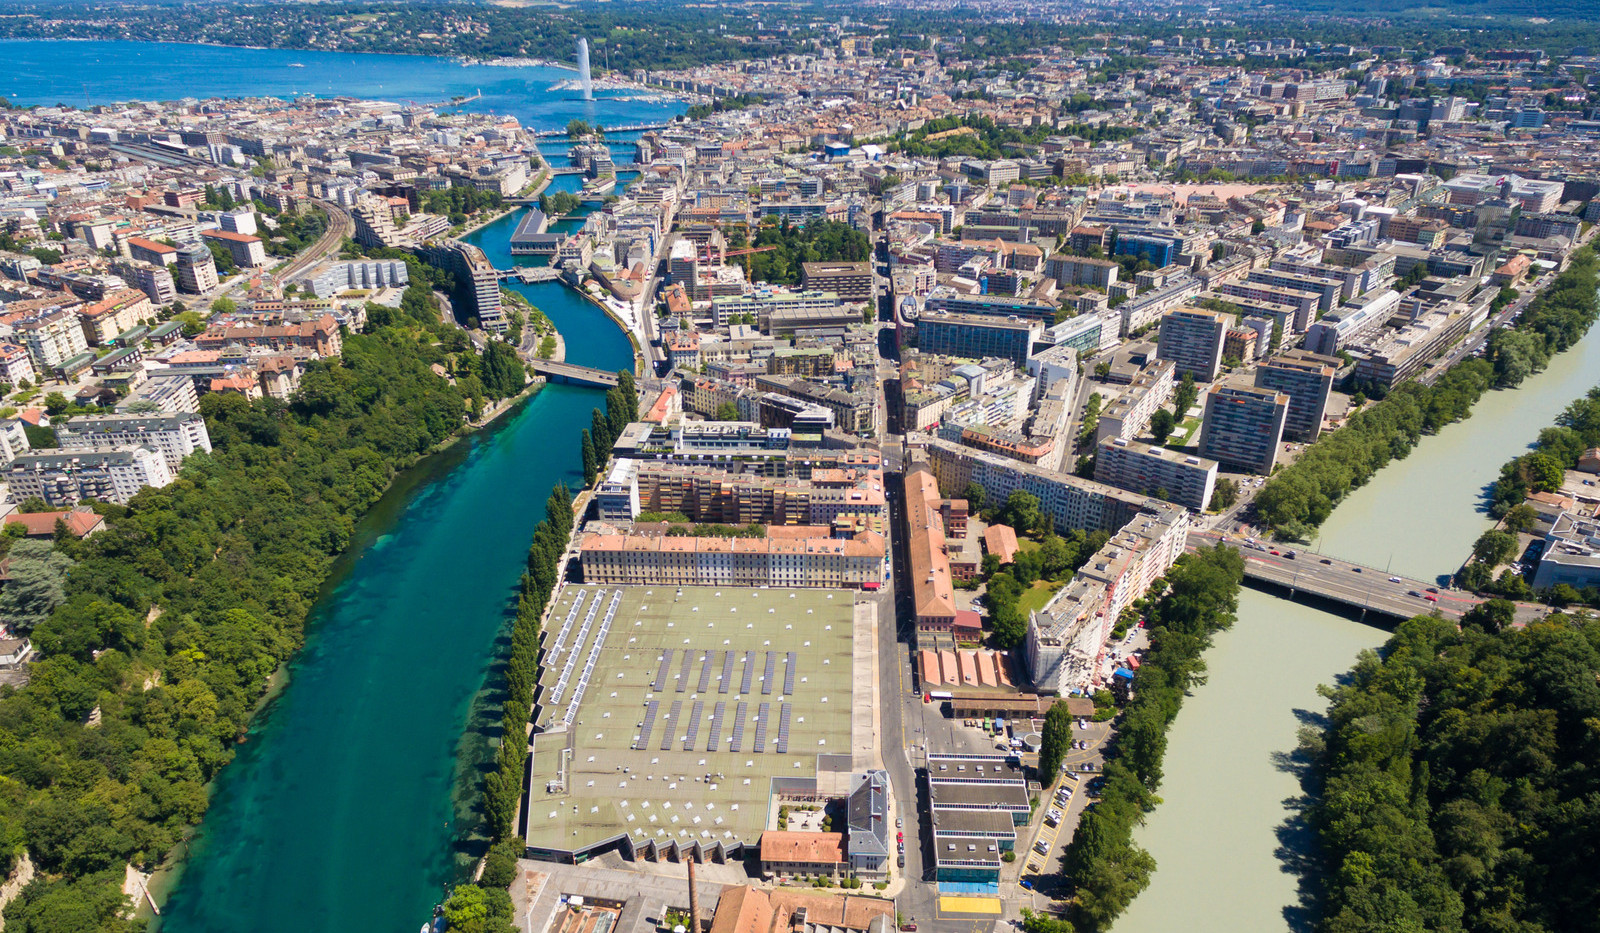 Canva - Aerial View of Arve an Rhone Riv